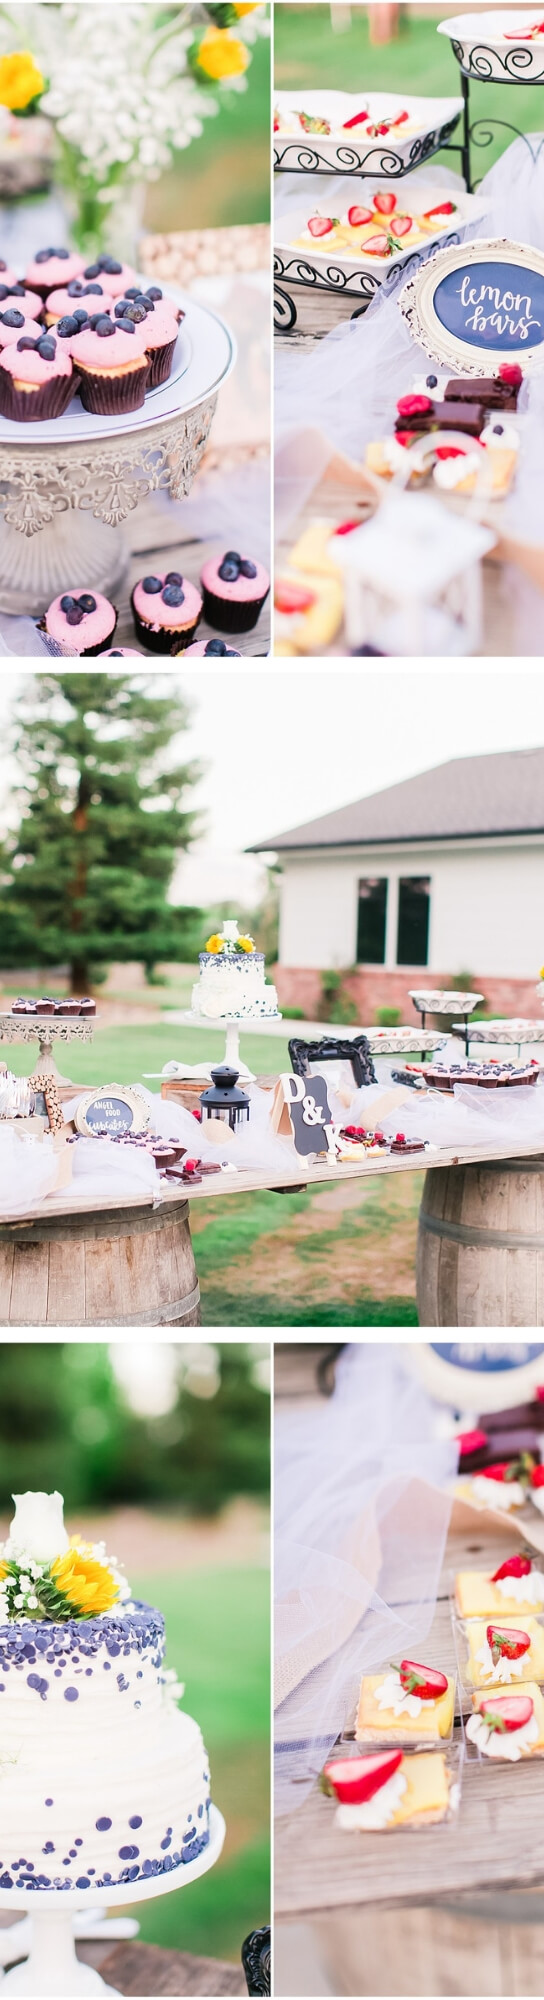 Backyard wedding decor ideas | Creative & Rustic Backyard Wedding Ideas For Summer & Fall